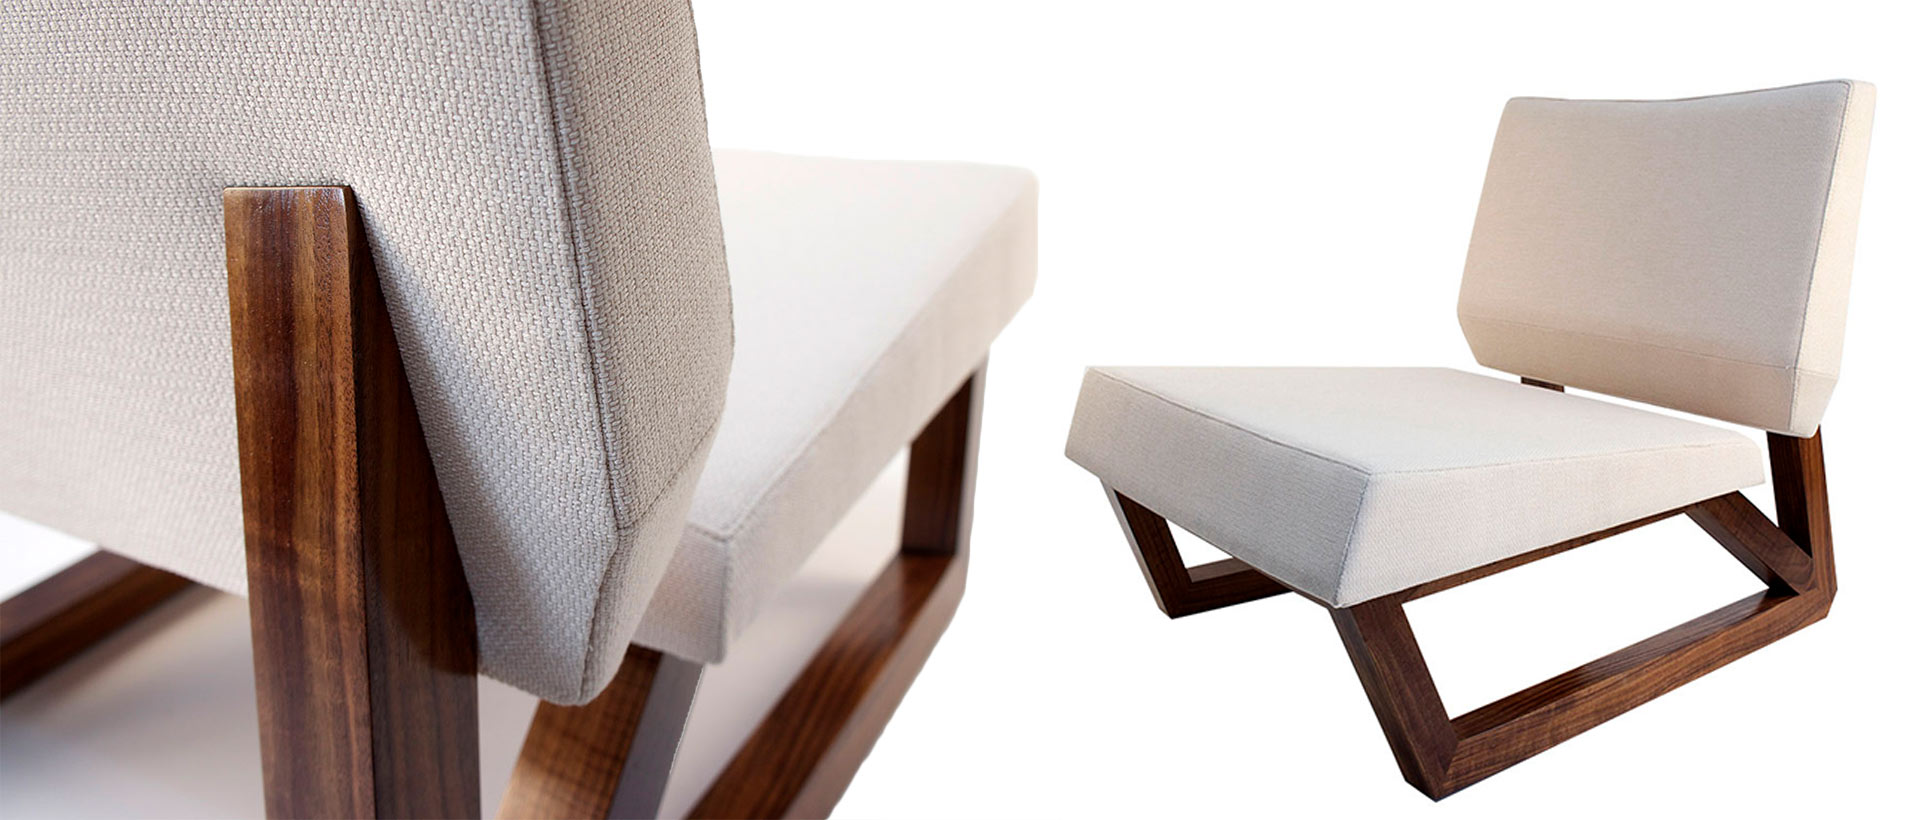 Atelier Purcell Luxury Furniture Collection